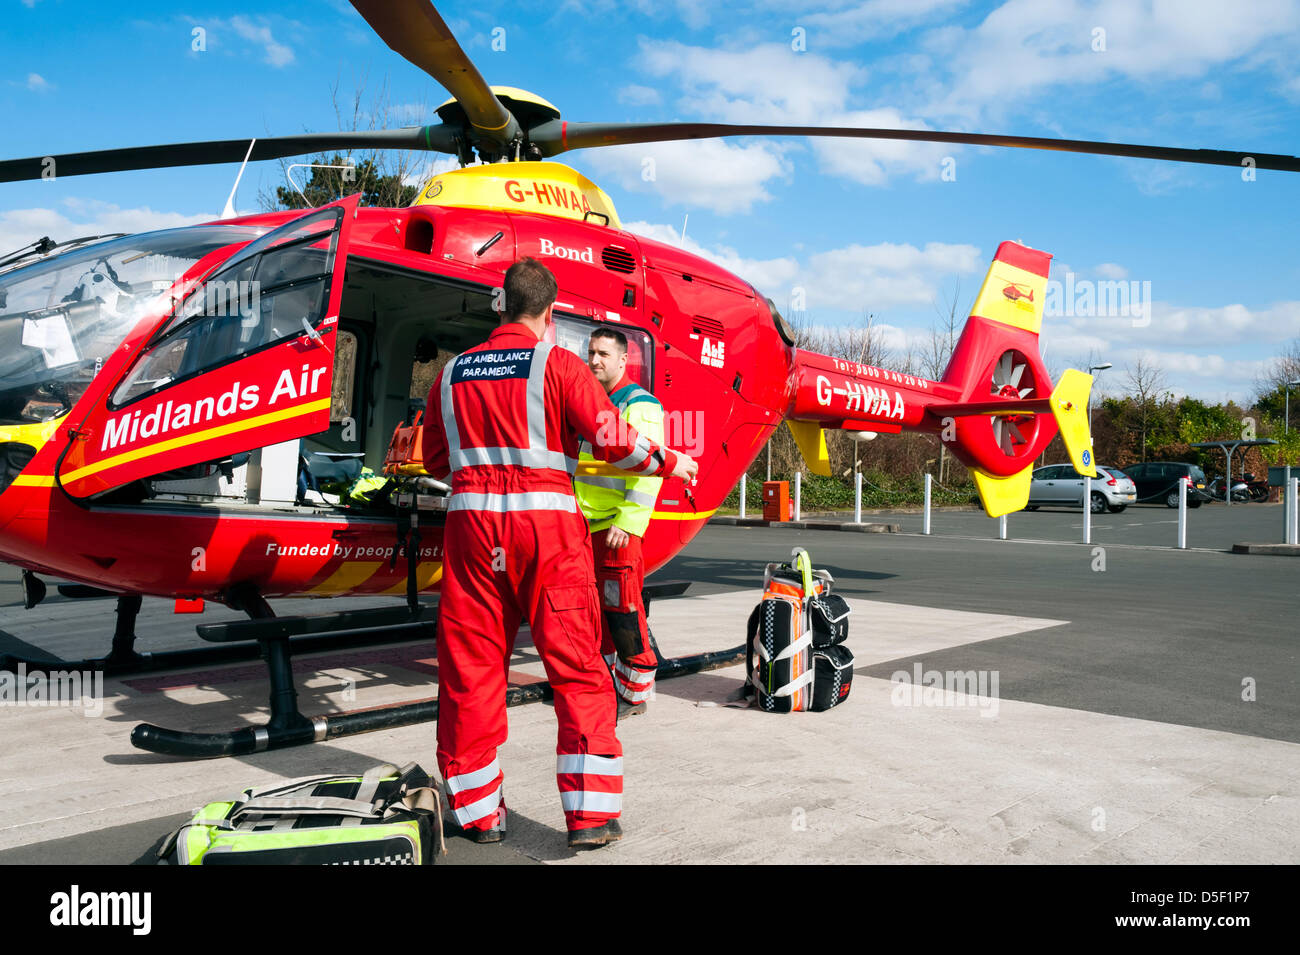 Midlands Air Ambulance landed in the car park at Hereford Hospital. Air ambulance paramedic stowing the stretcher - Stock Image